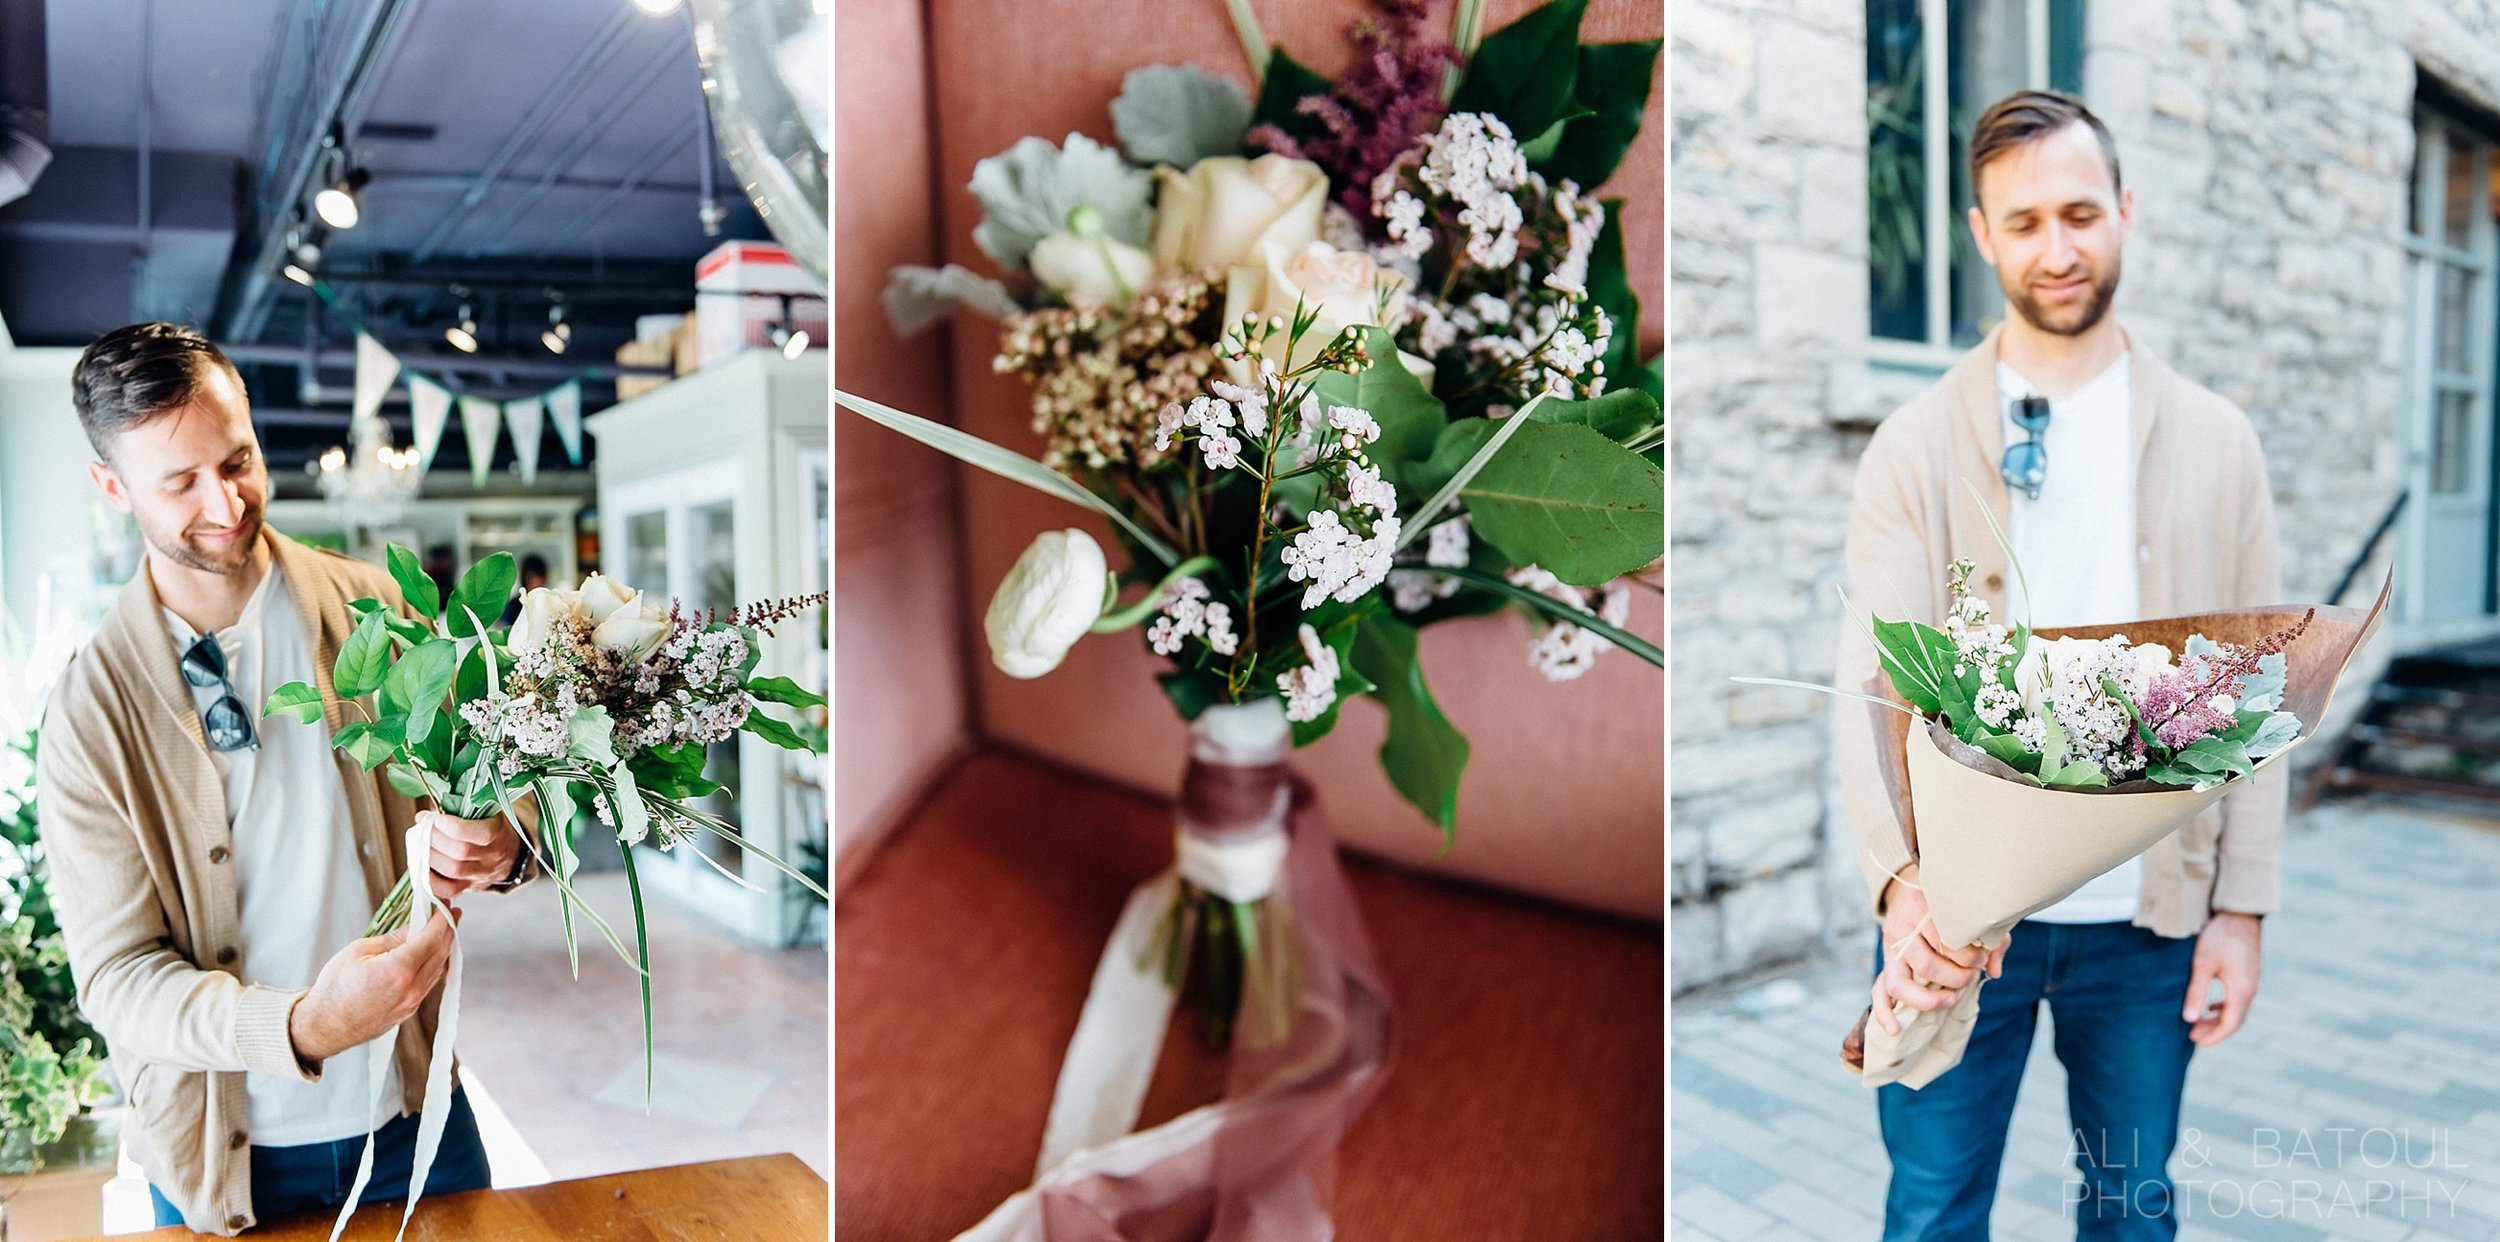 Ali and Batoul Photography - light, airy, indie documentary Ottawa wedding photographer_0024.jpg